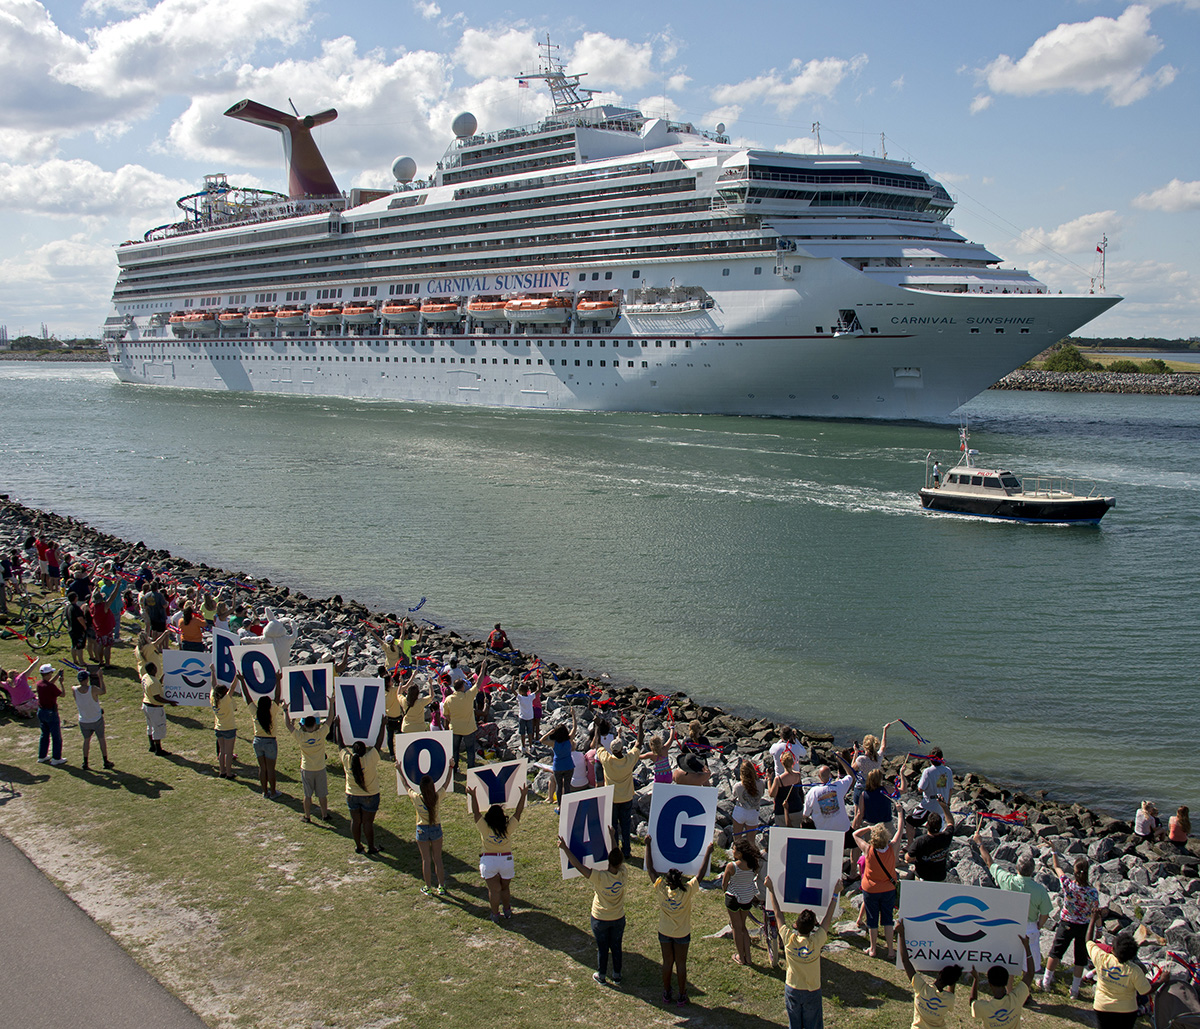 Carnival Sunshine Sails on Inaugural Caribbean Voyage from Port Canaveral